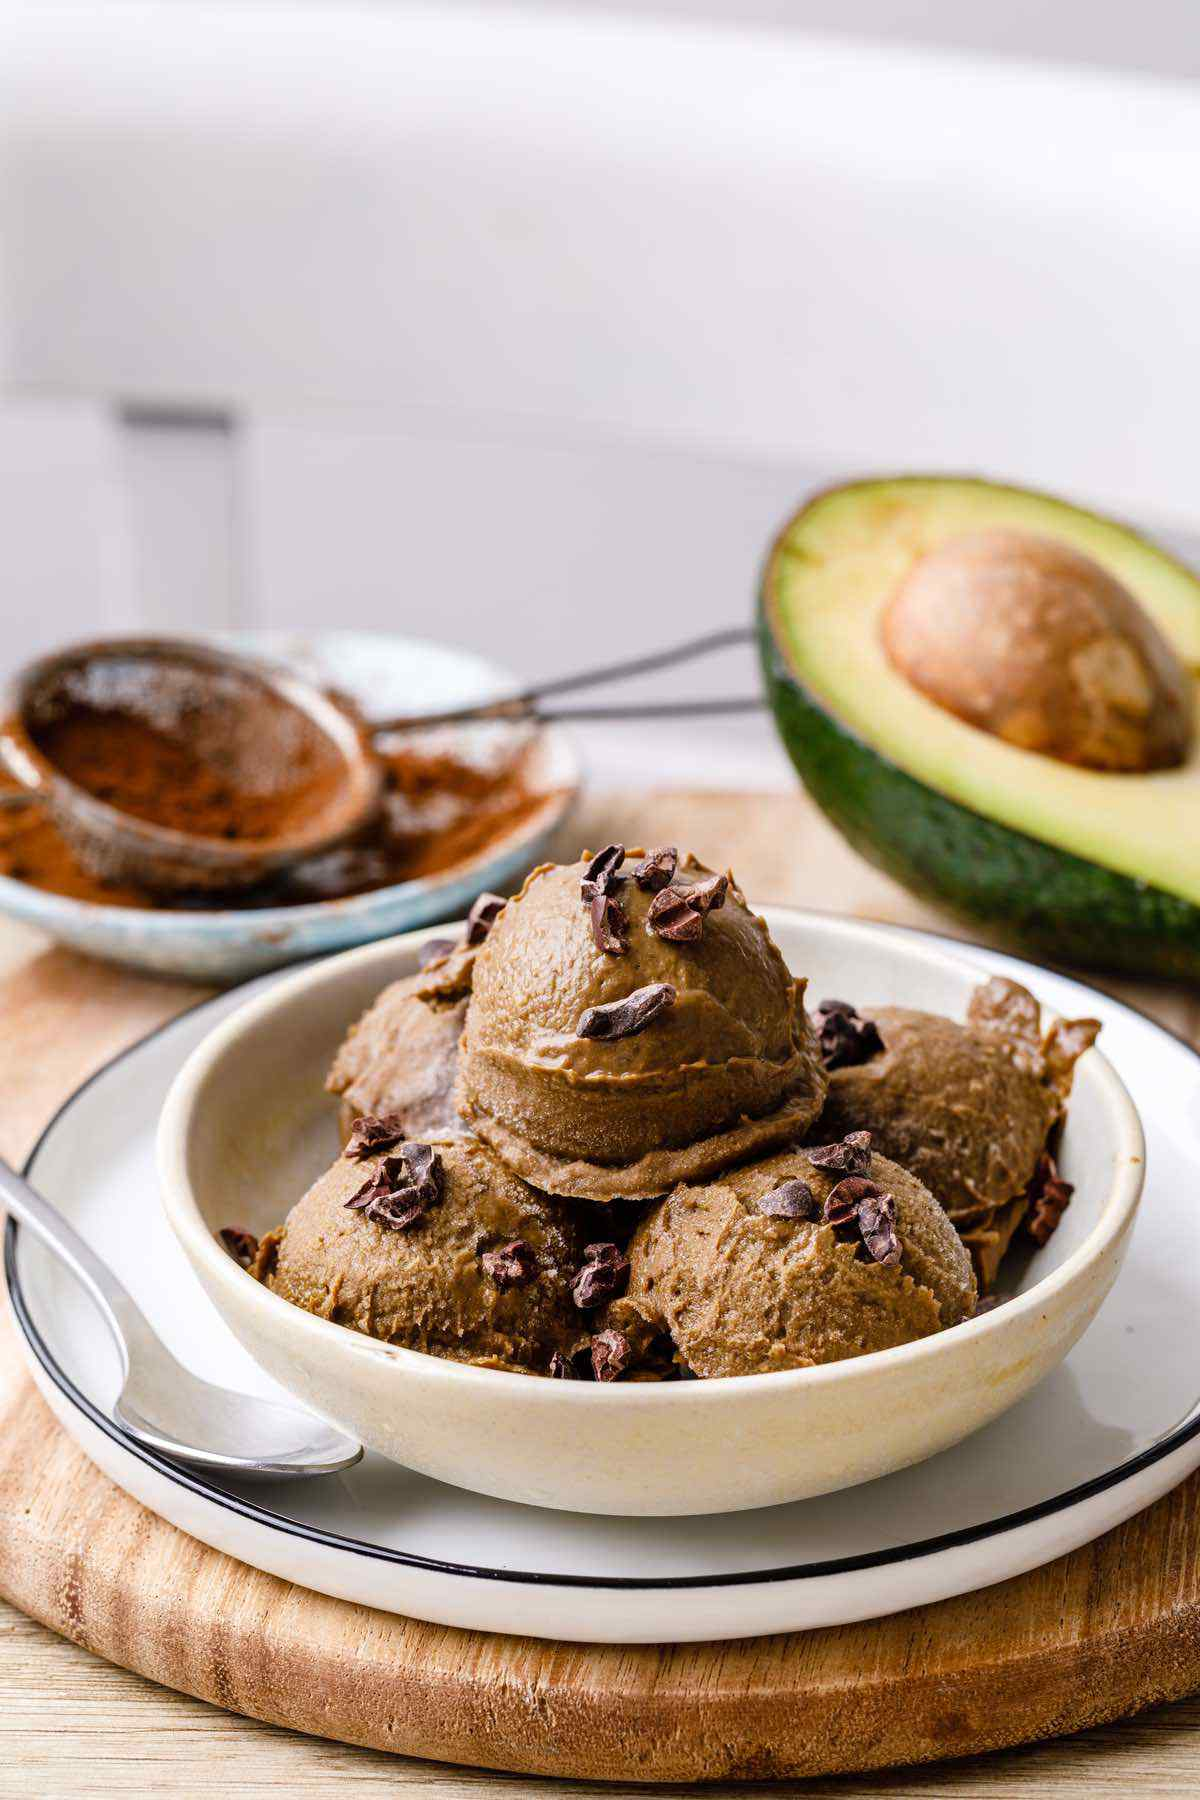 Chocolate Avocado Dairy-Free Ice Cream